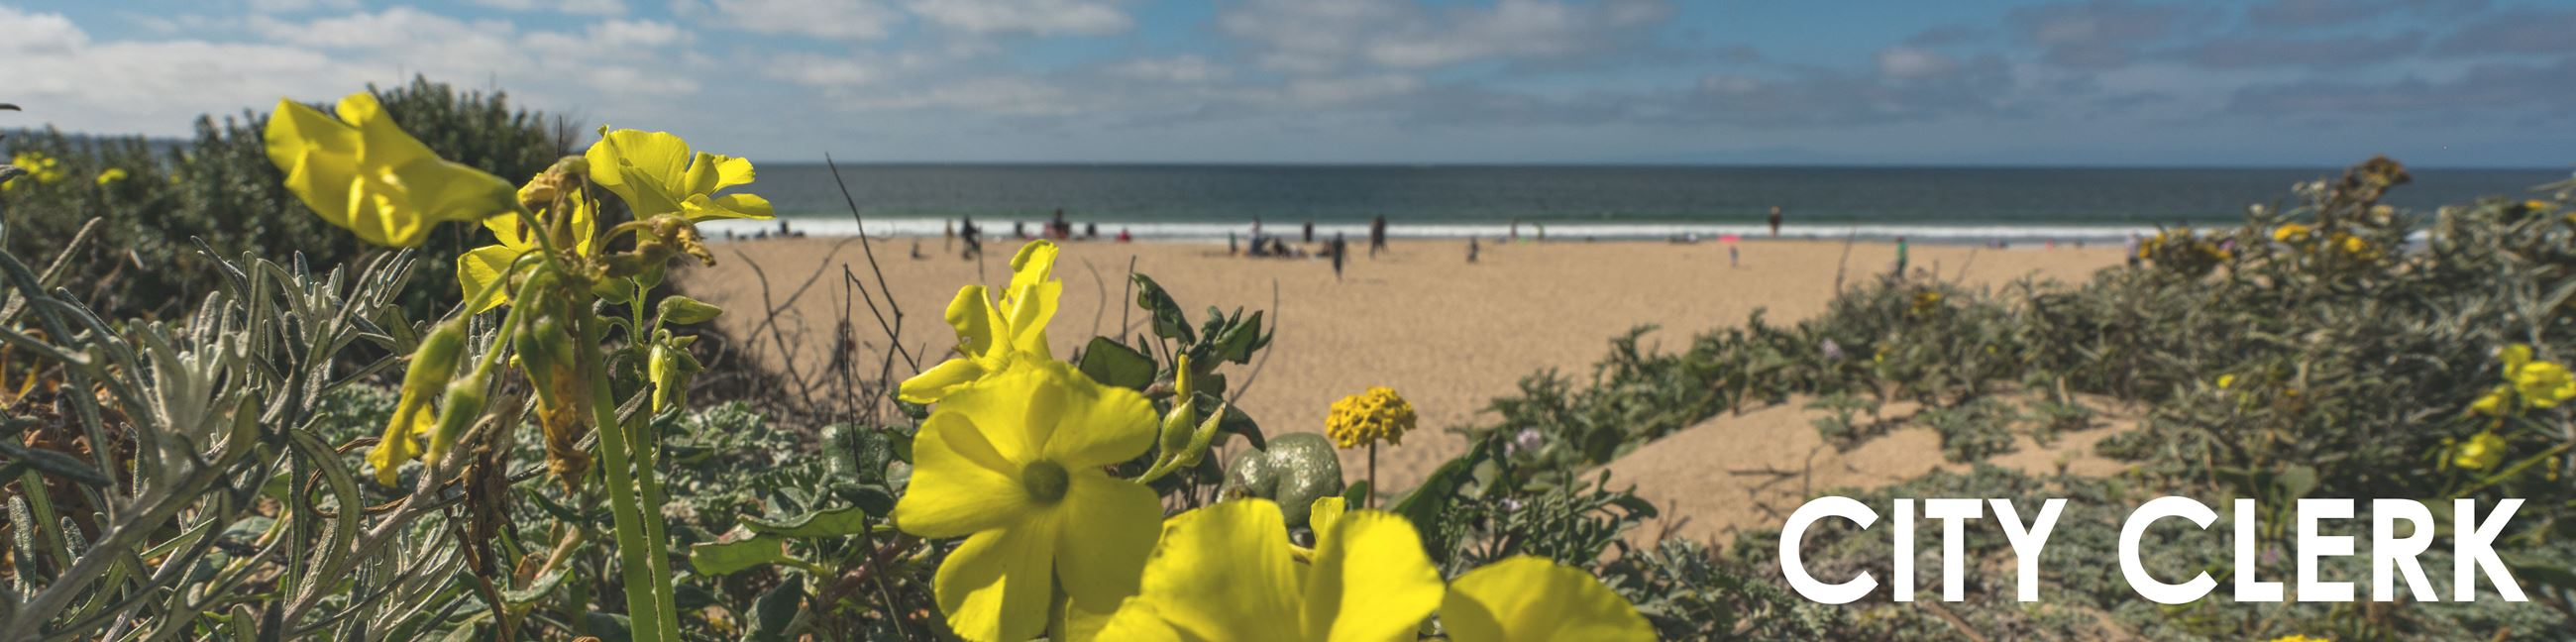 """City Clerk"" image of beach and yellow flowers"